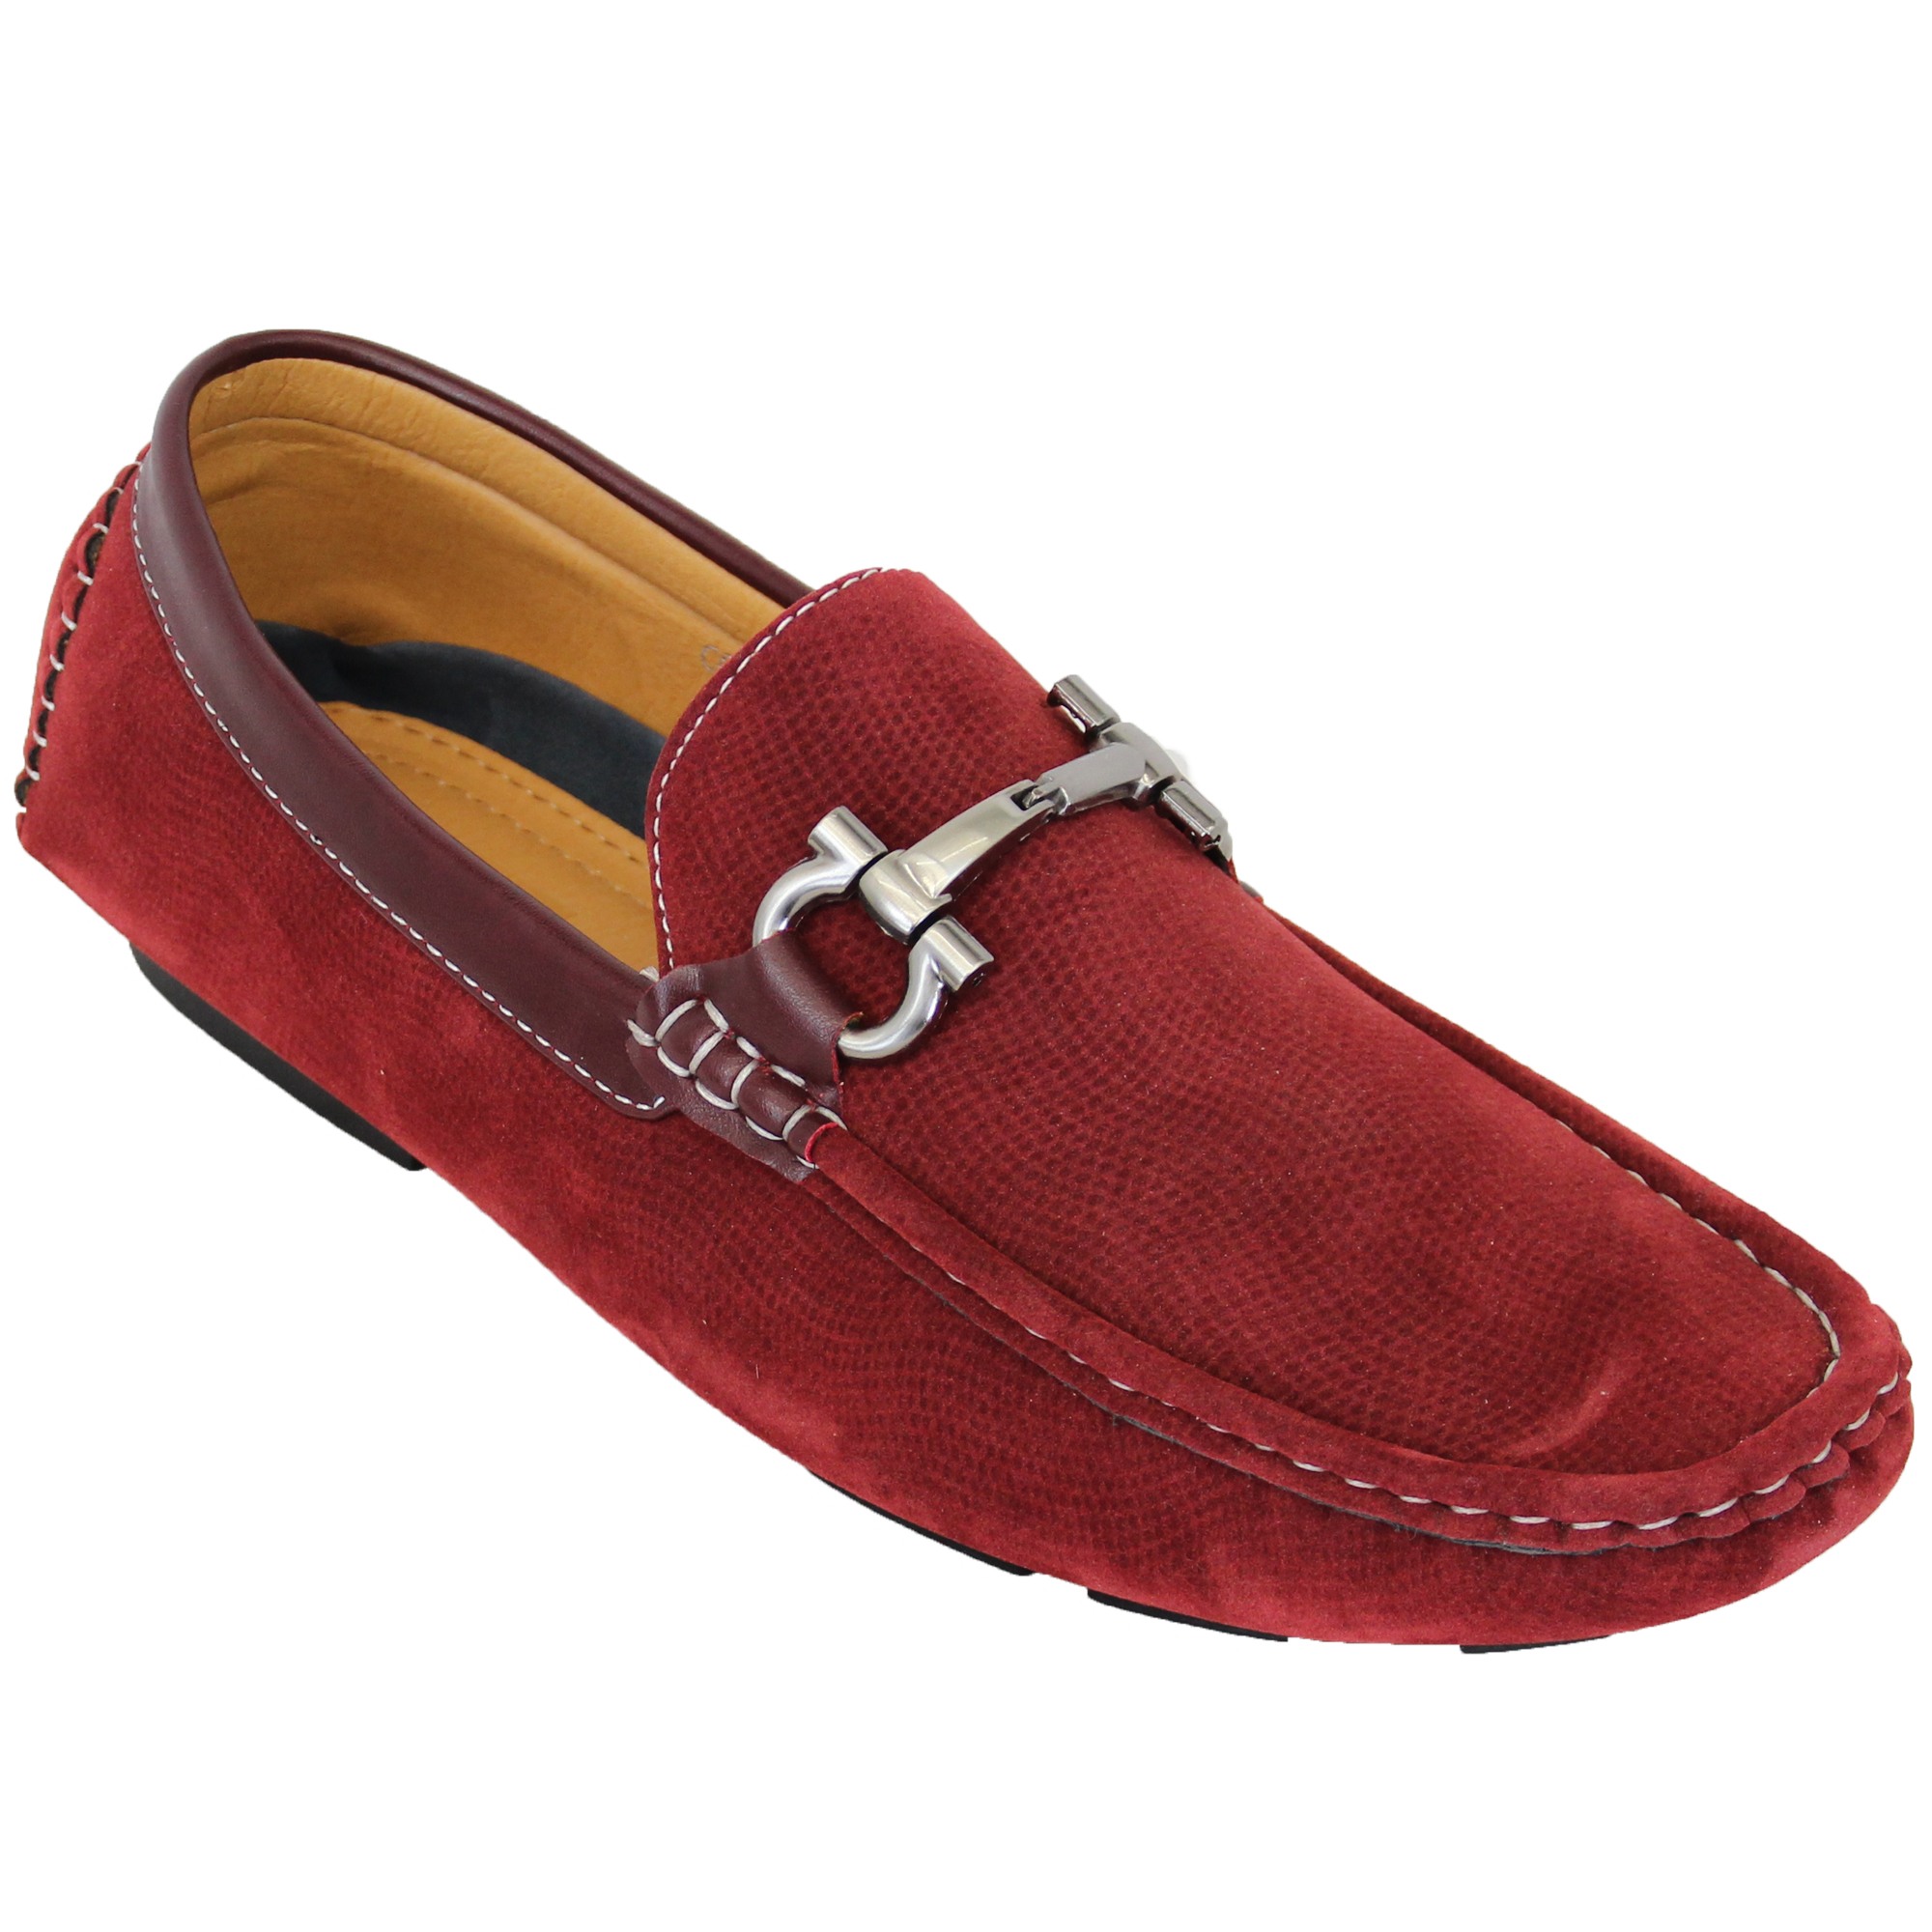 Difference Between Boat Shoes And Slip On